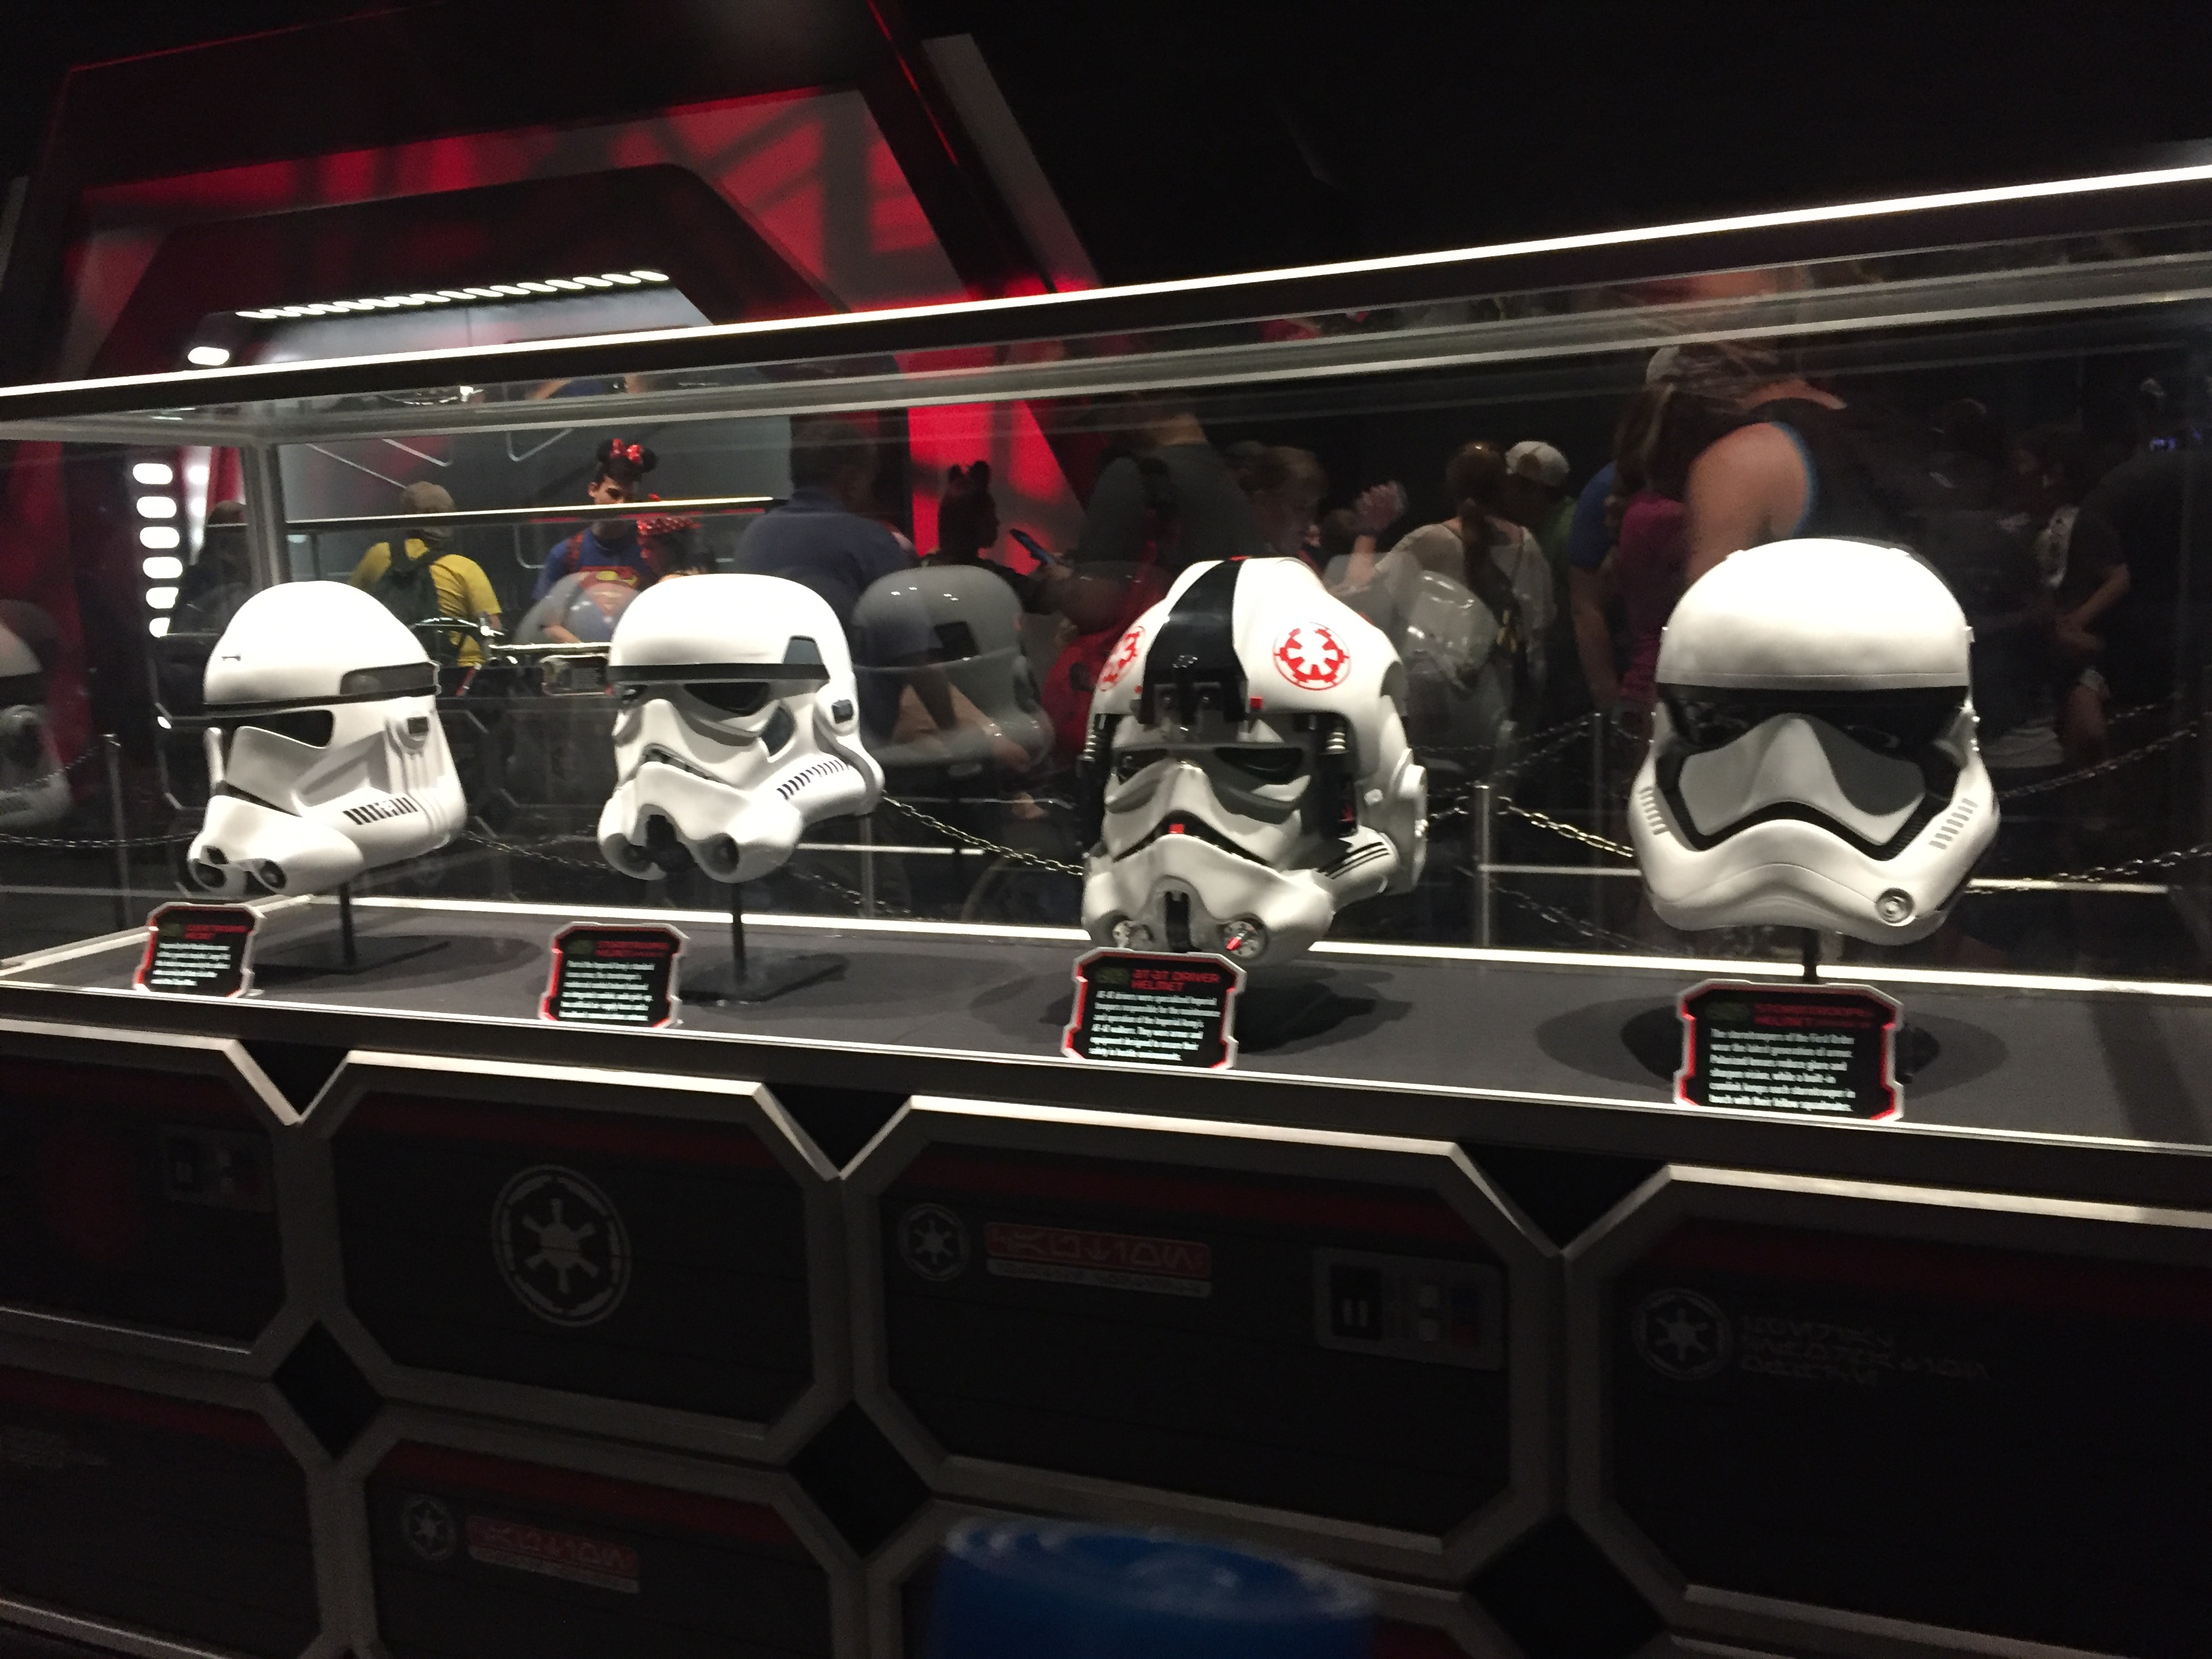 Disney World Awakens Star Wars, A Review by an 11 Year Old Fan